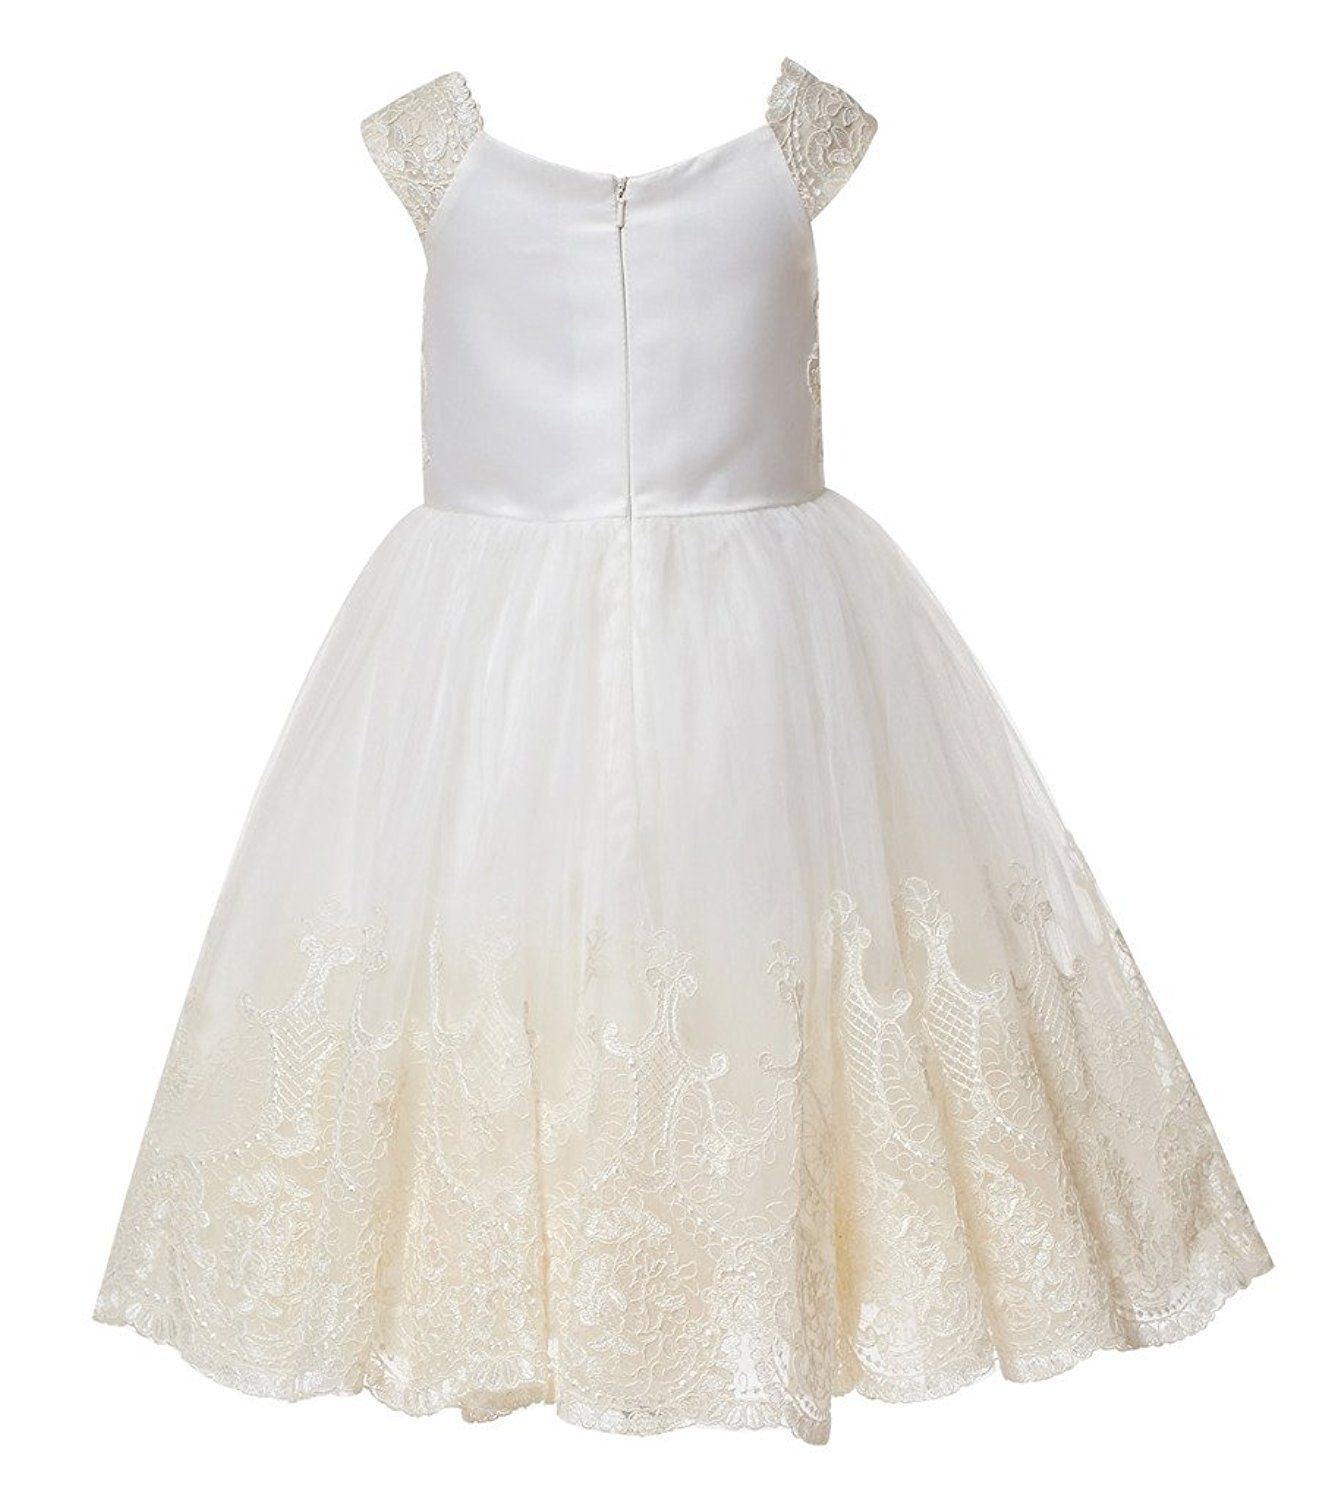 Thstylee champagne lace flower girl dress little girls toddlers